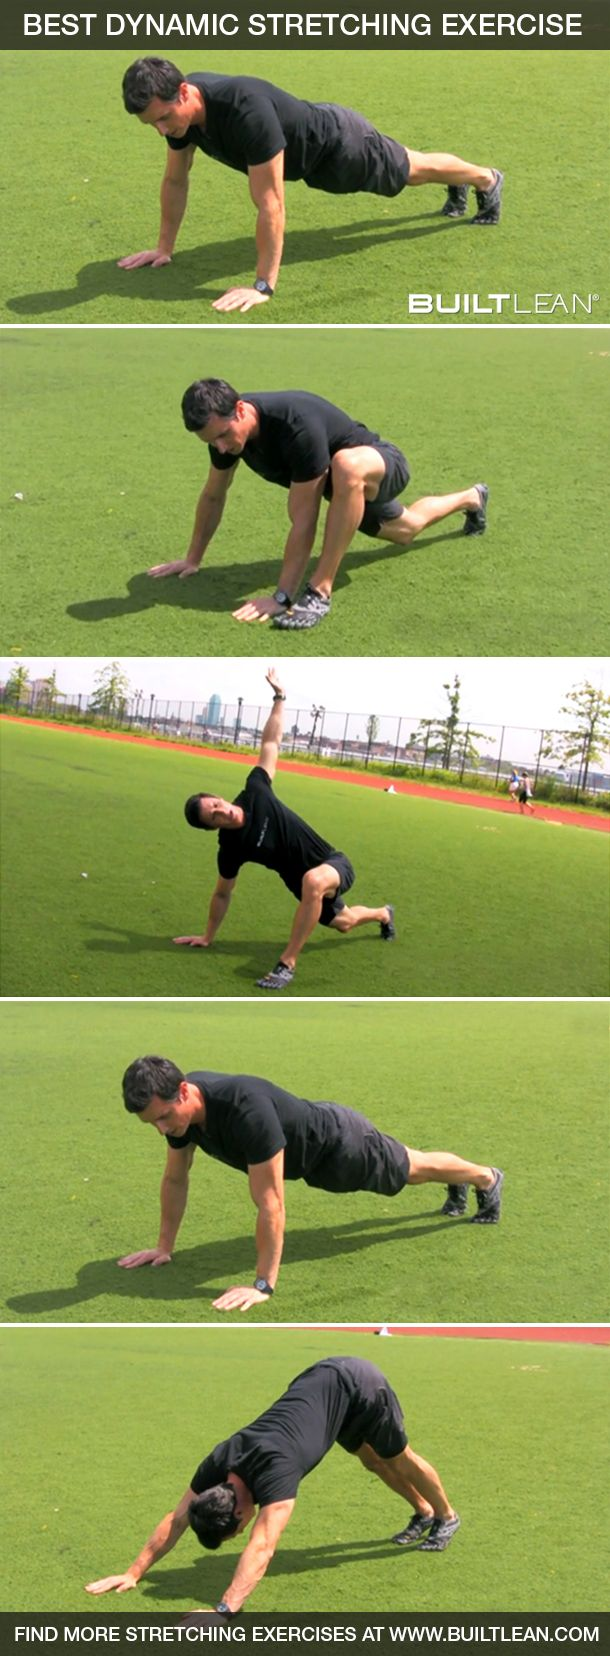 This dynamic stretching exercise will get you ready for your next workout. Watch the full video here: http://www.builtlean.com/2013/08/01/best-dynamic-stretching-exercise/